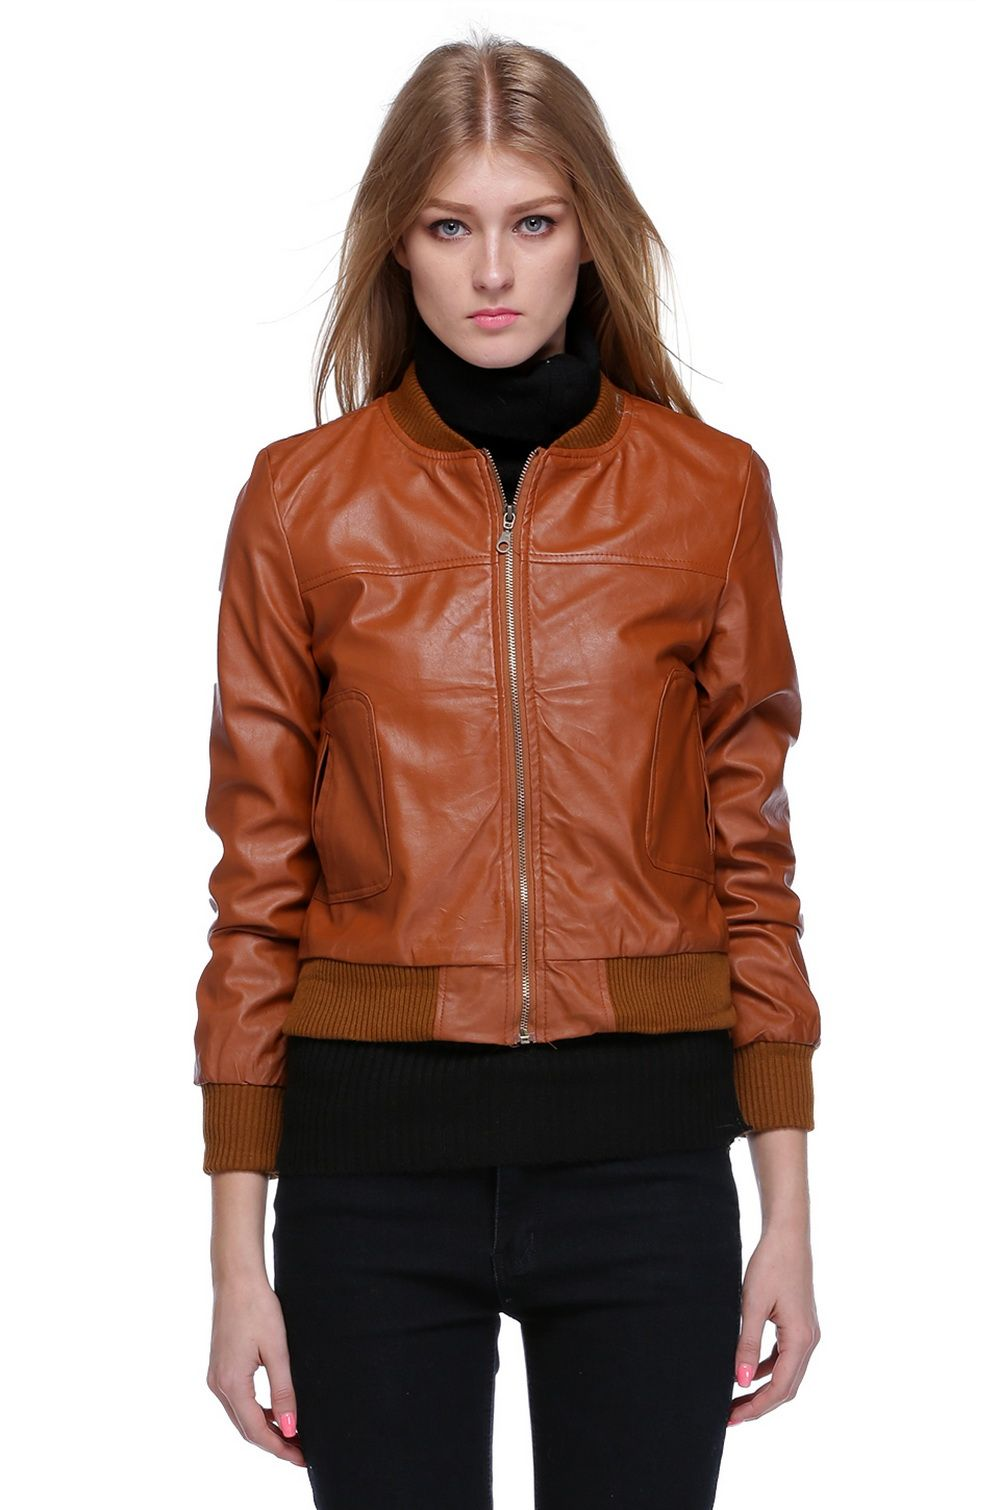 Womens leather jacket in tall – Modern fashion jacket photo blog